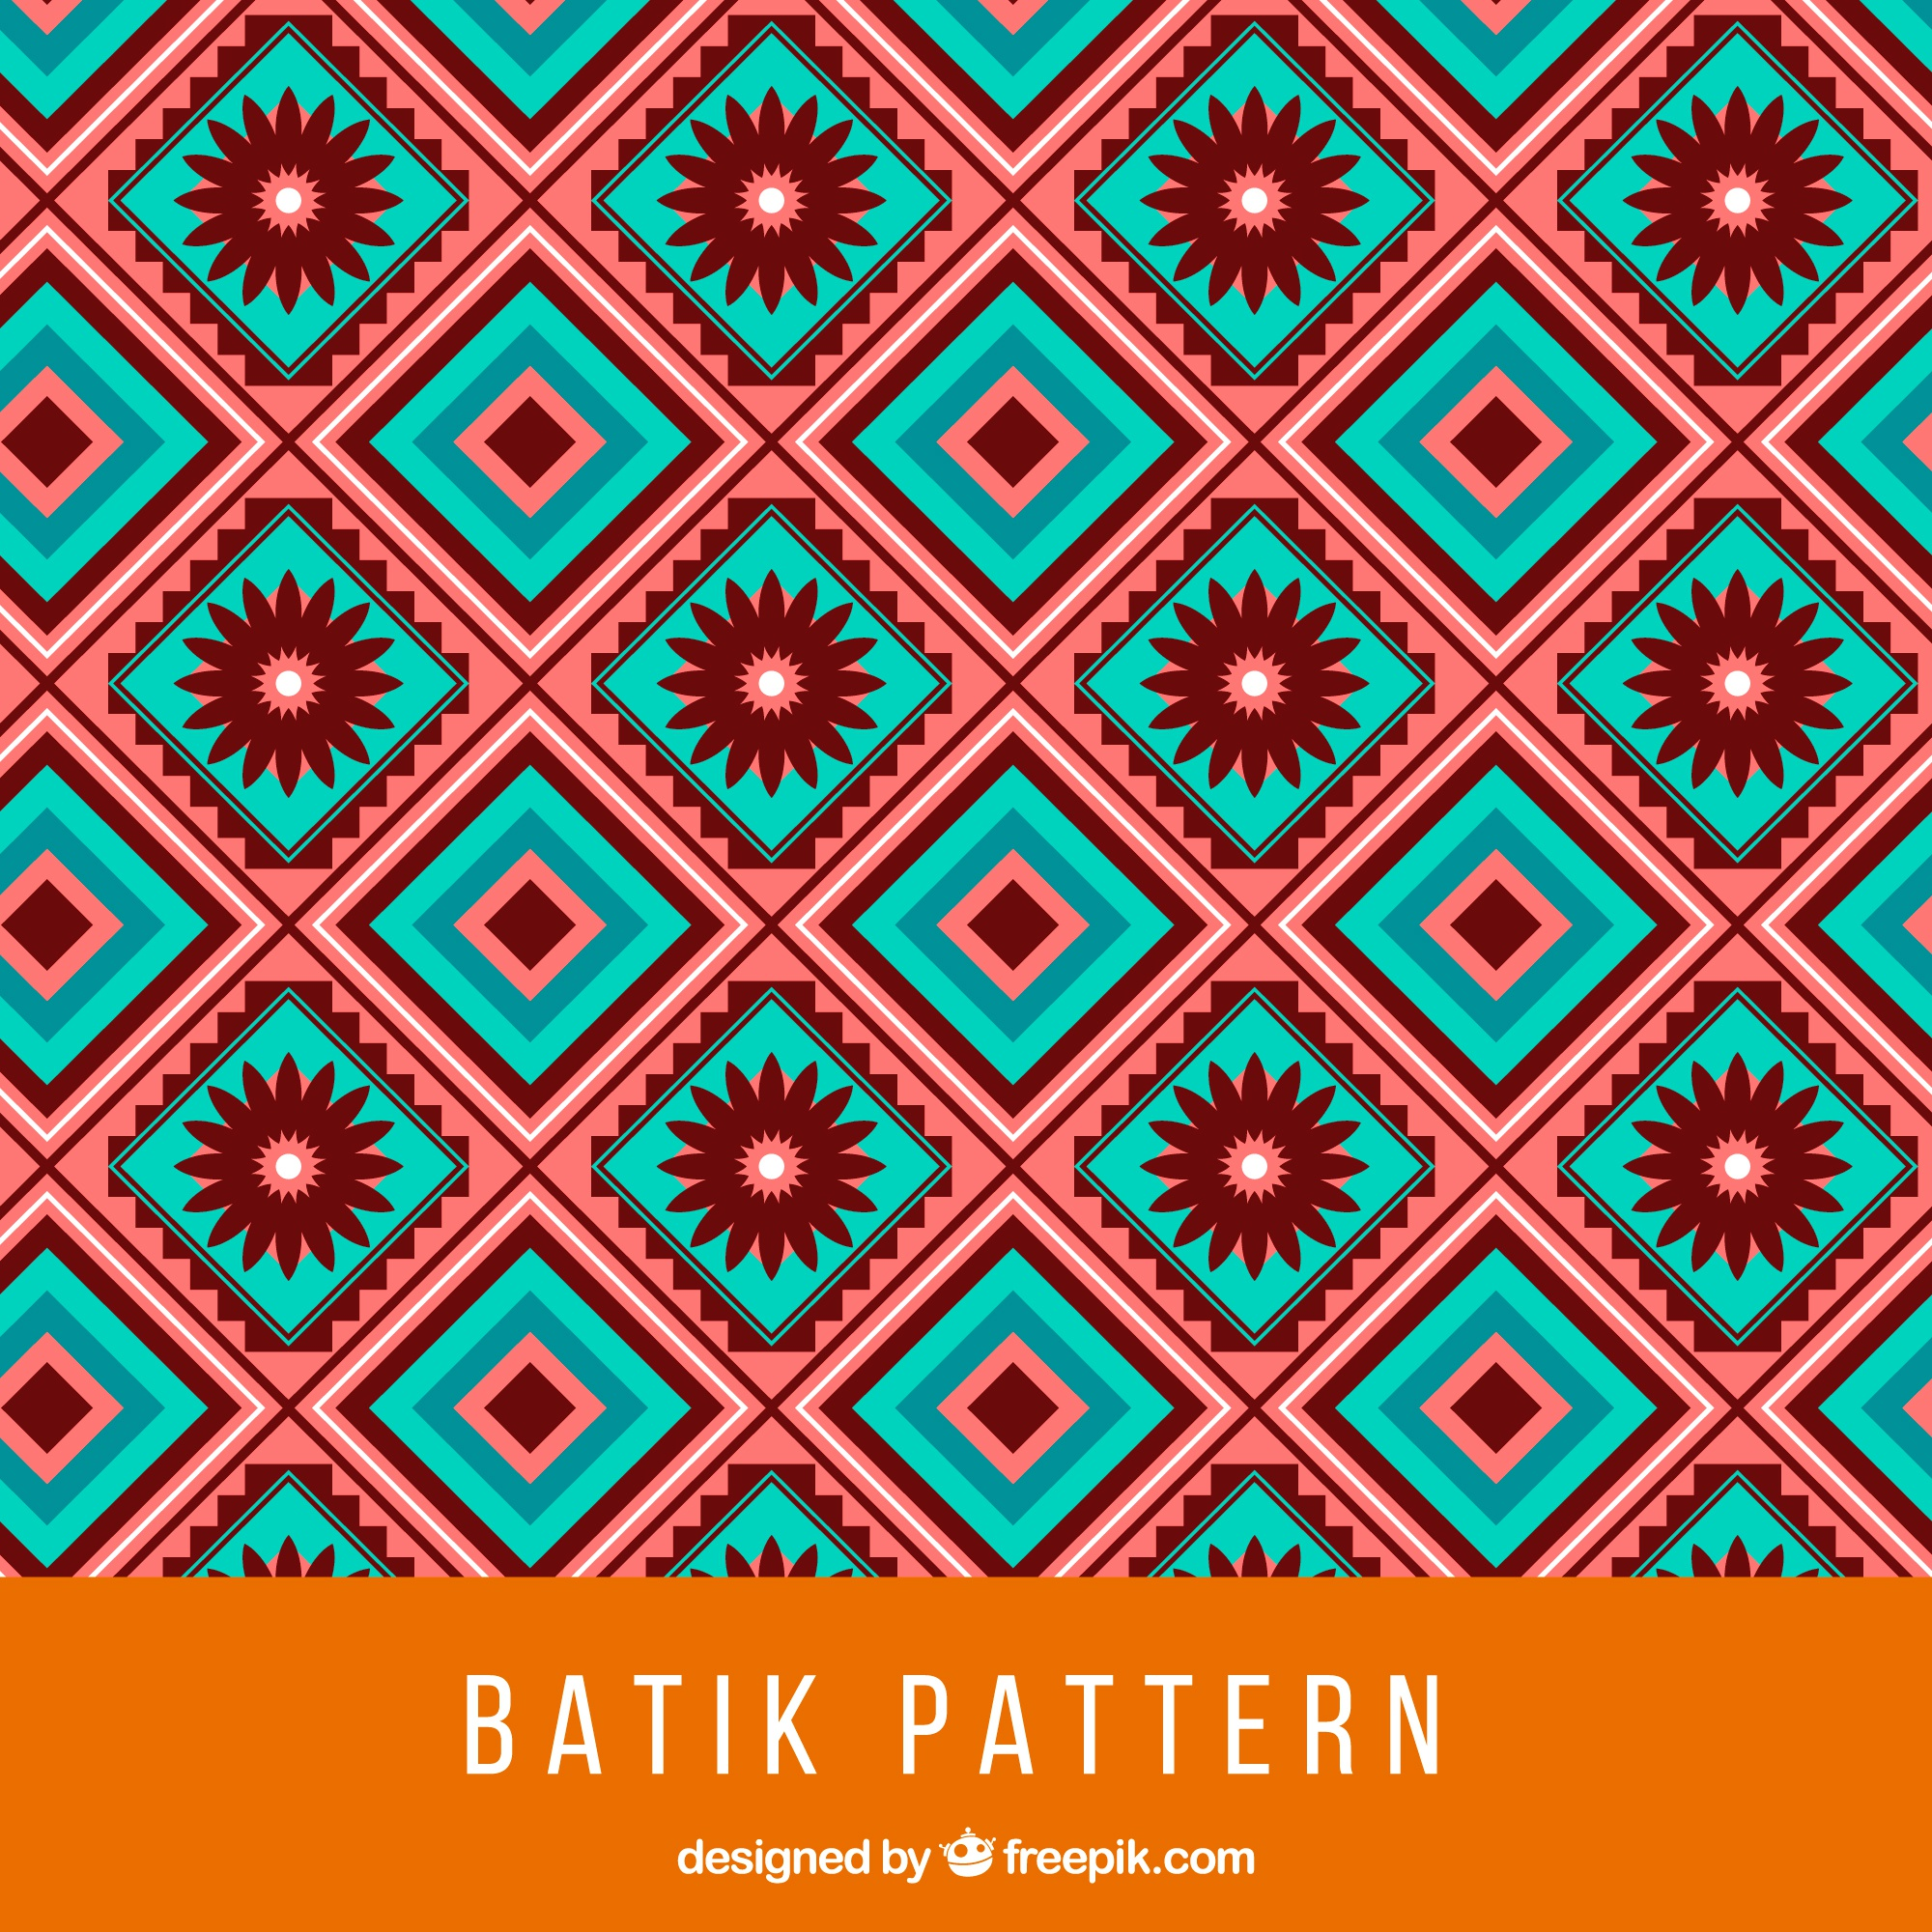 Batik pattern with squares and flowers